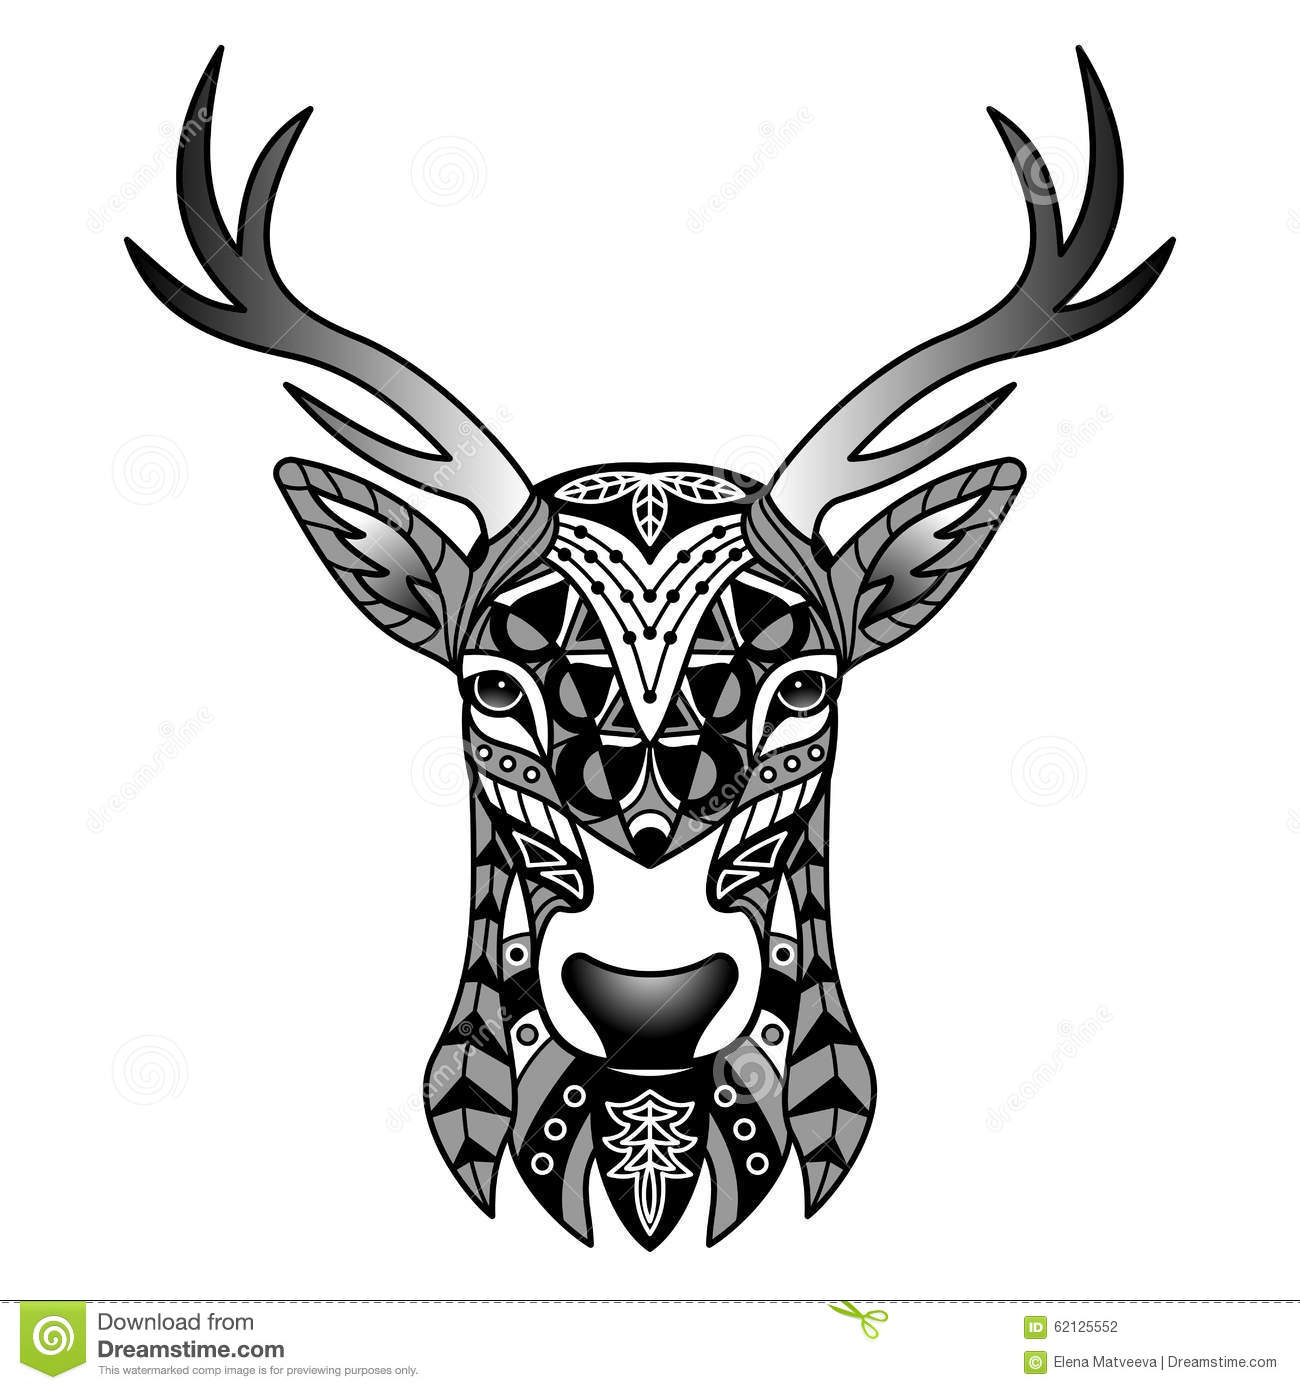 Tattoo Designs White Background: Fantasy Black Deer Mascot Stock Vector. Image Of Child